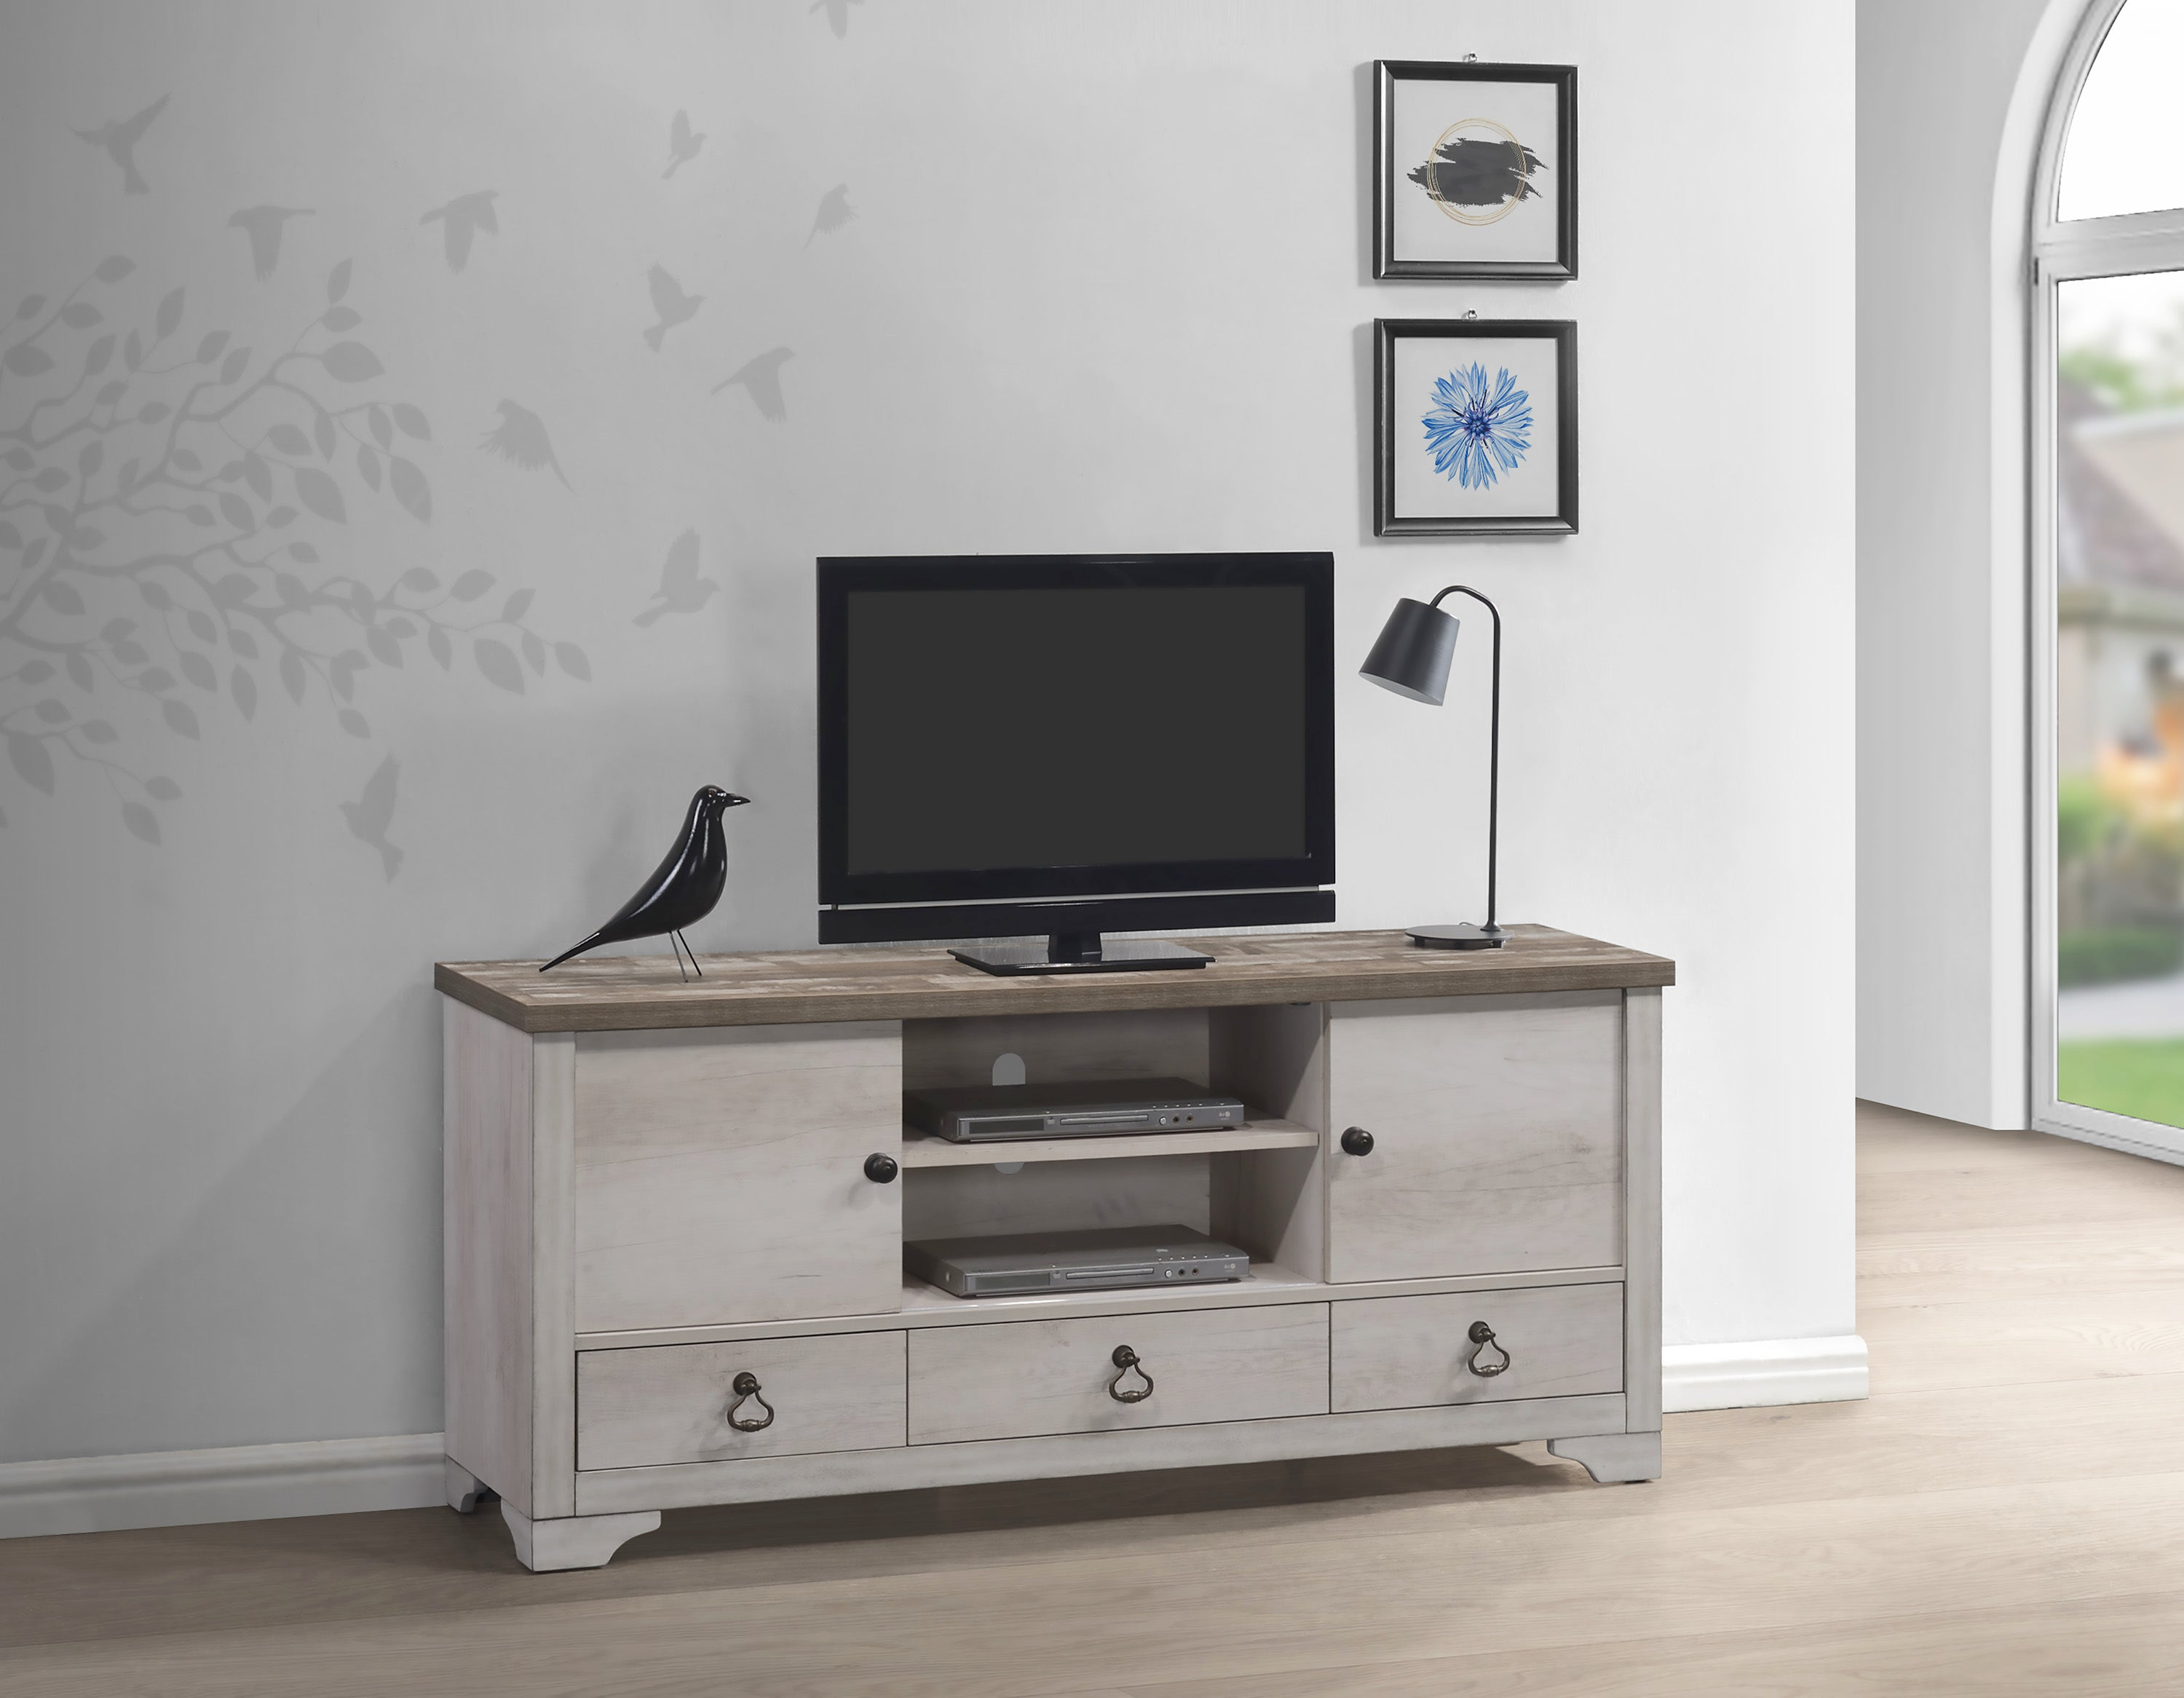 Shiplap Farmhouse TV Stand